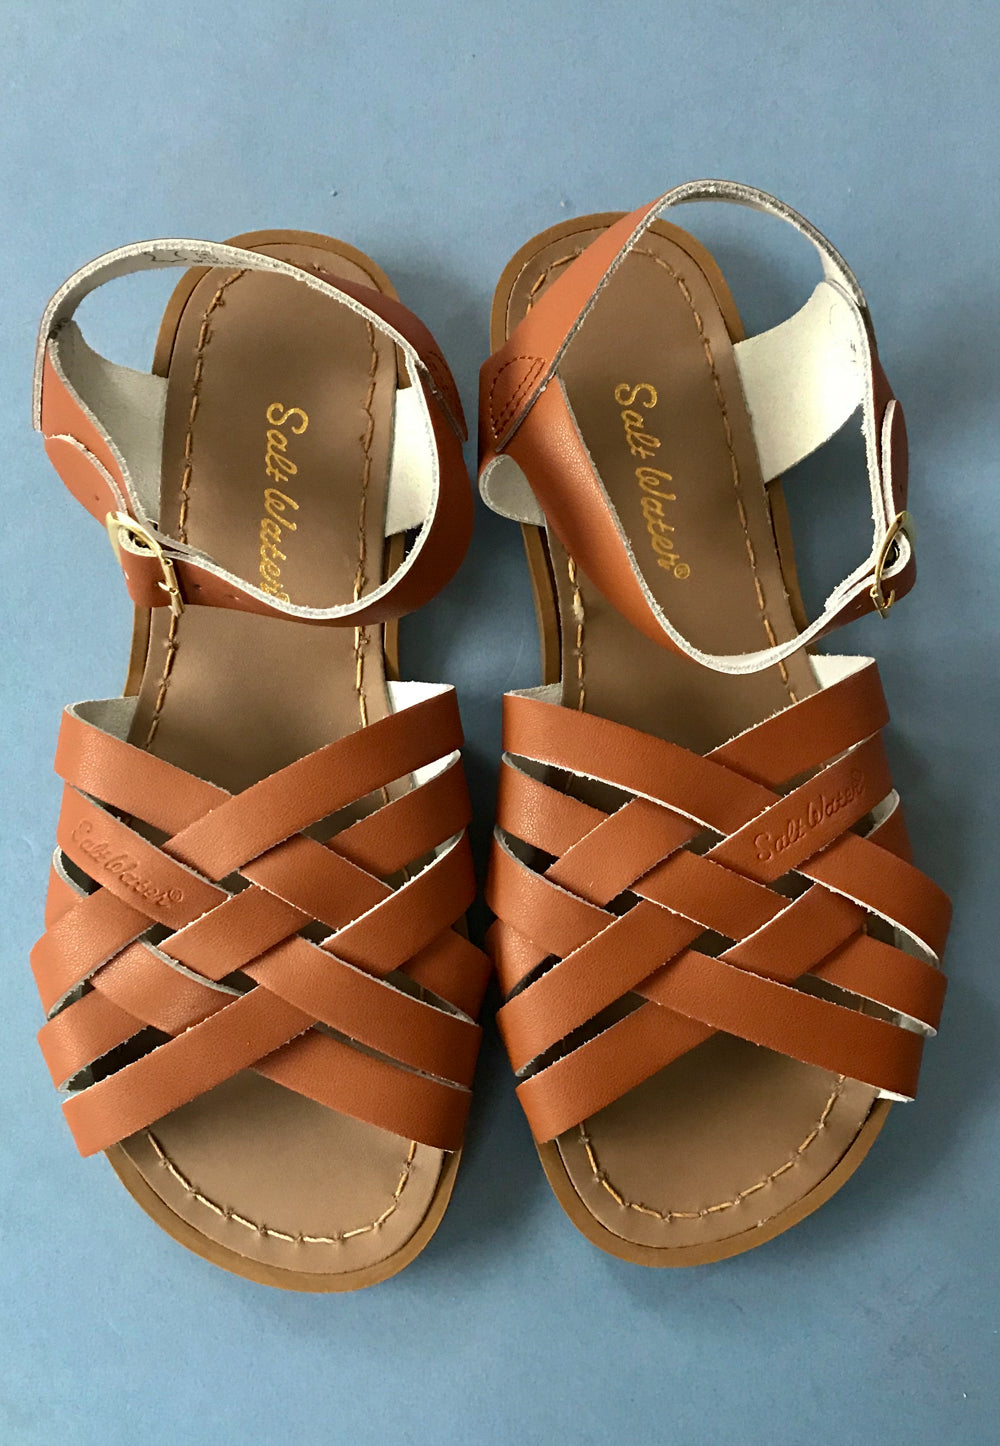 SALT WATER SANDALS Retro